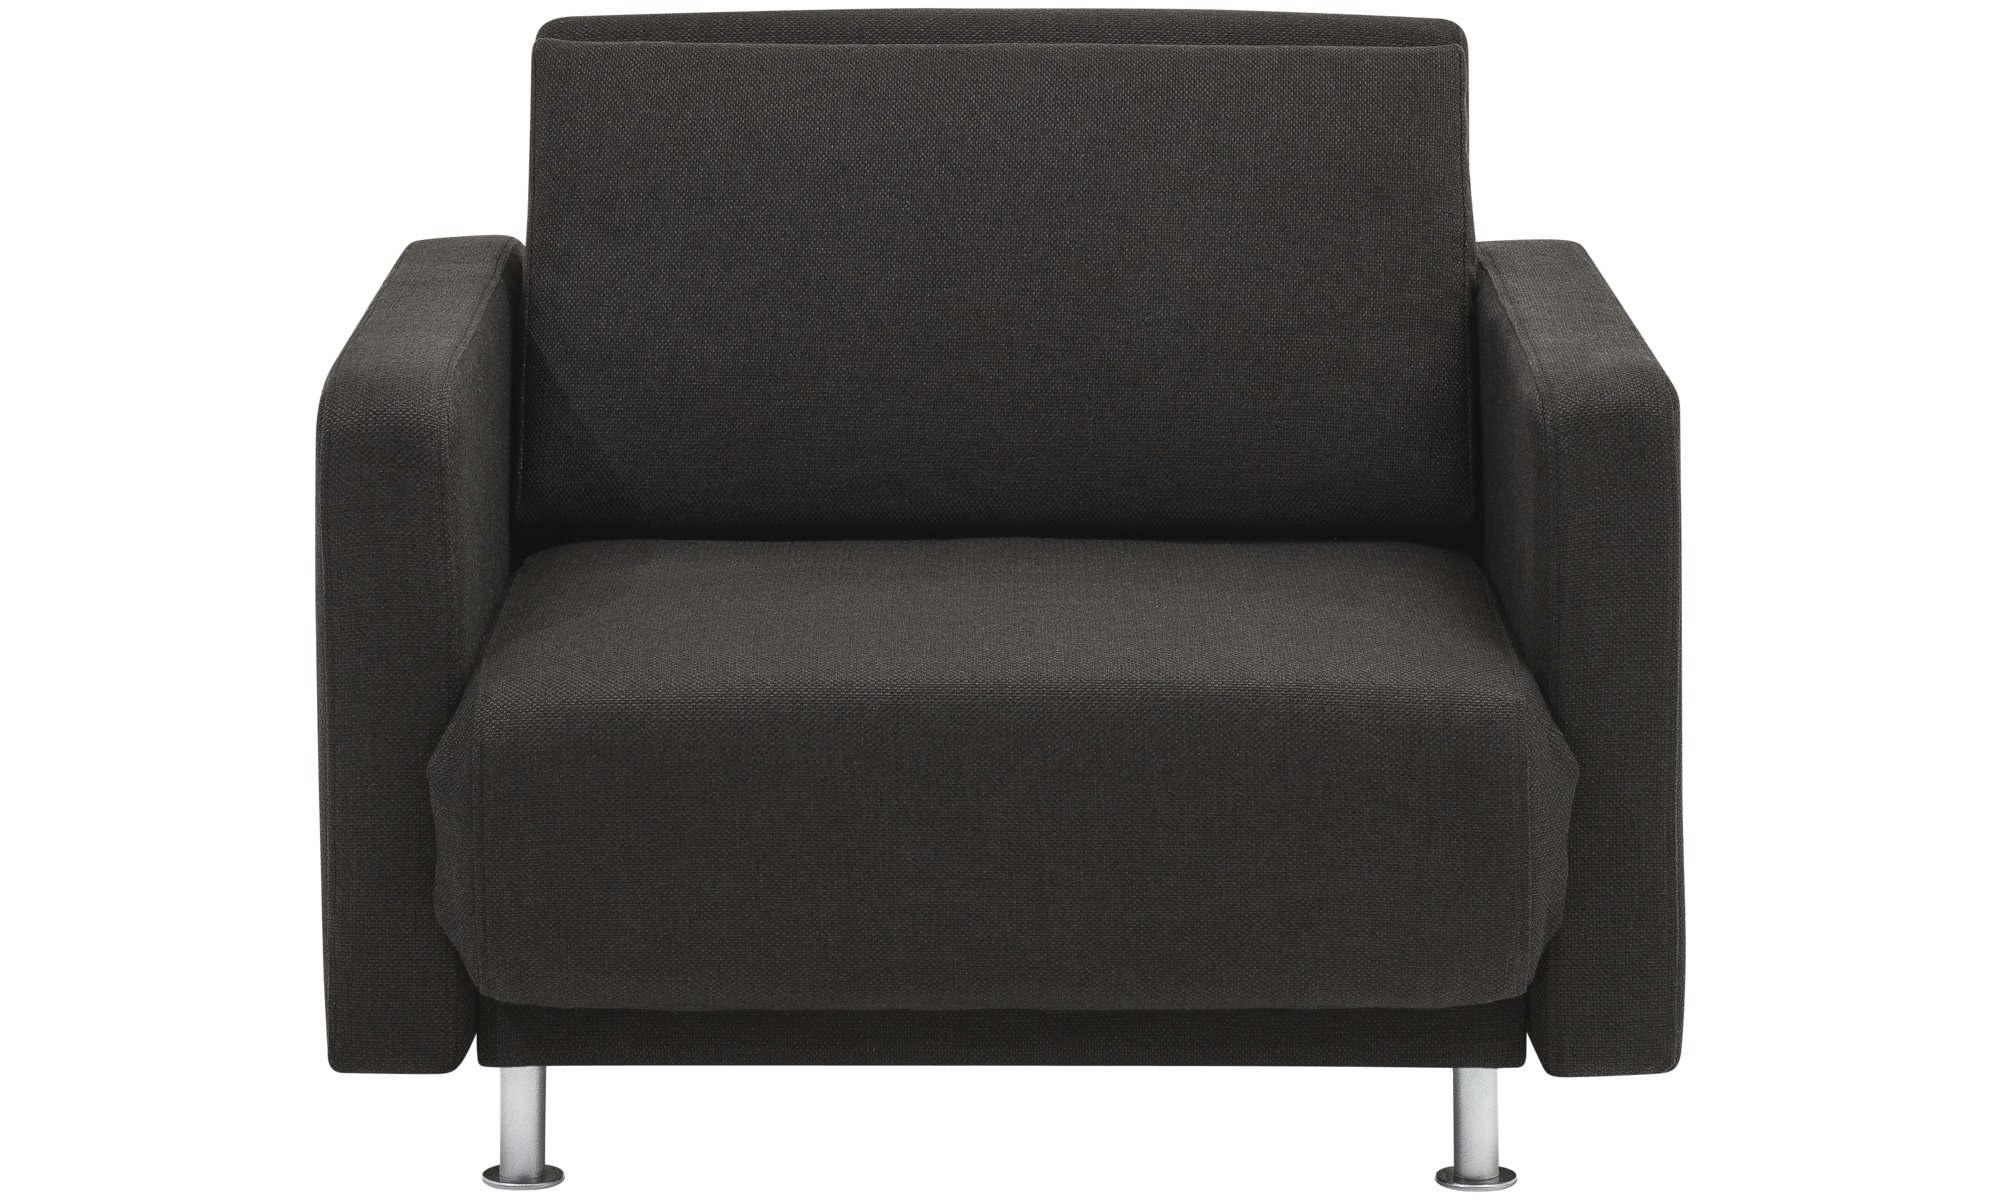 Armchairs   Melo 2 Armchair With Reclining And Sleeping Function   Black    Fabric ...